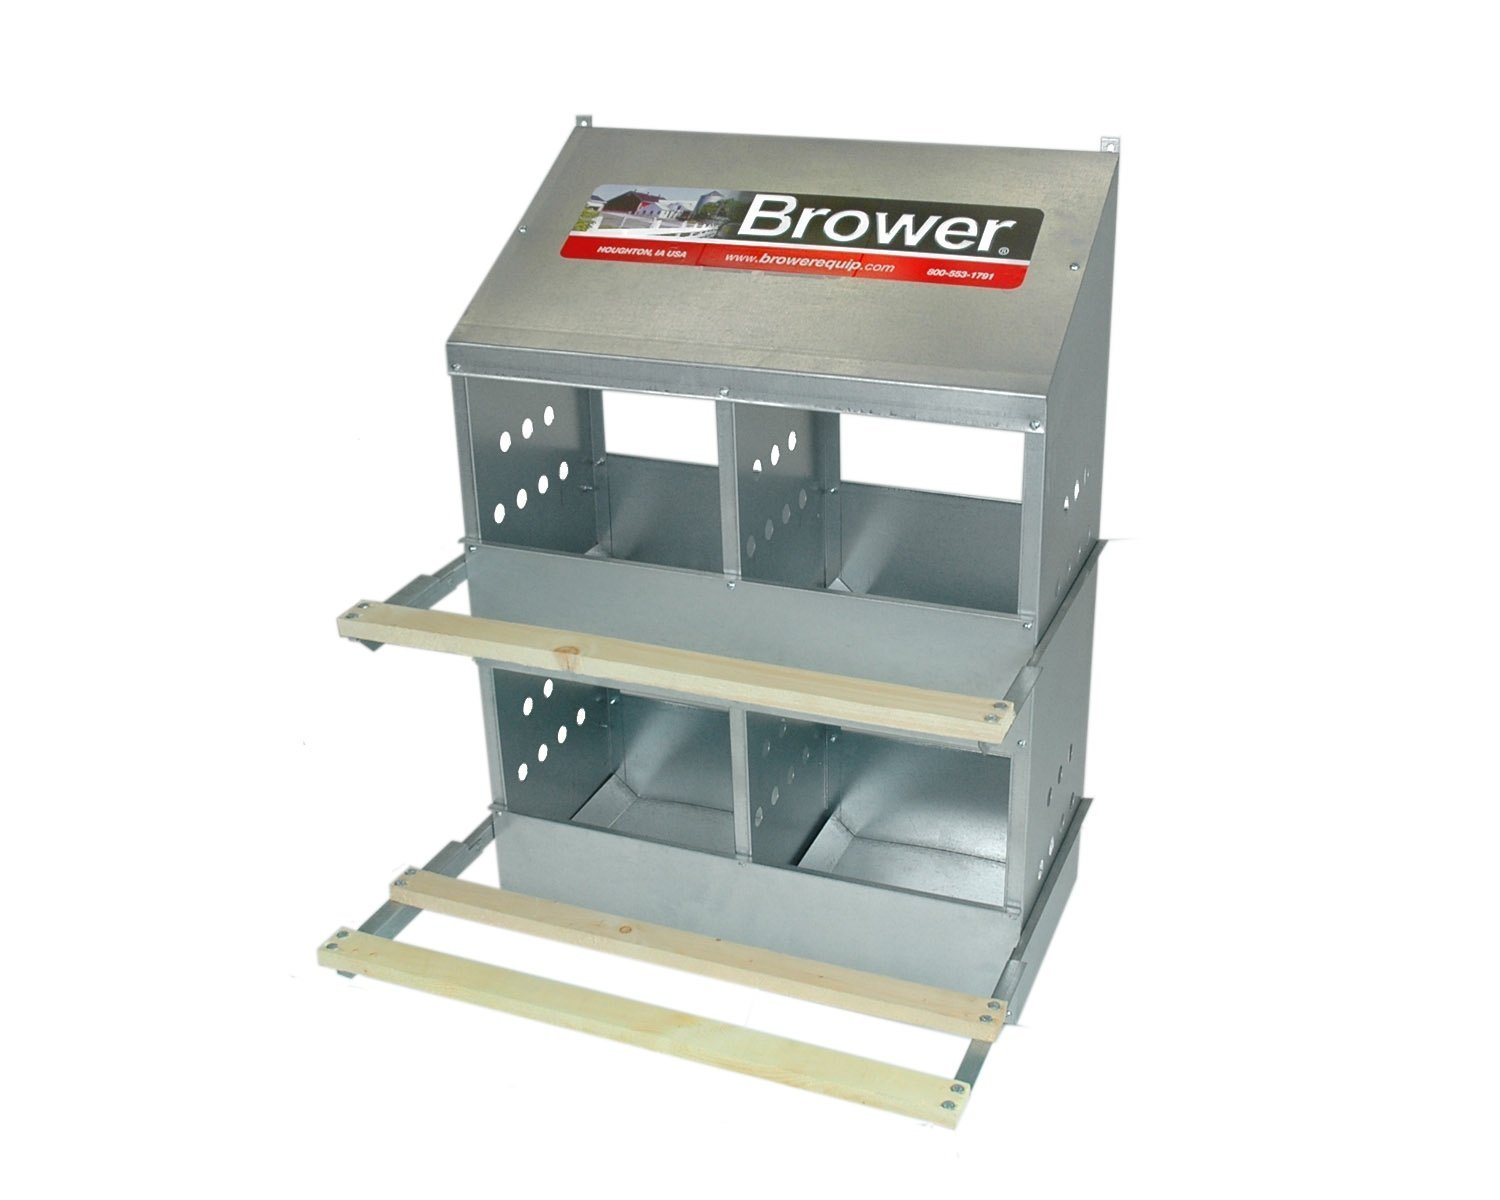 Brower 404B Poultry 4-Hole Nest Browerbox2